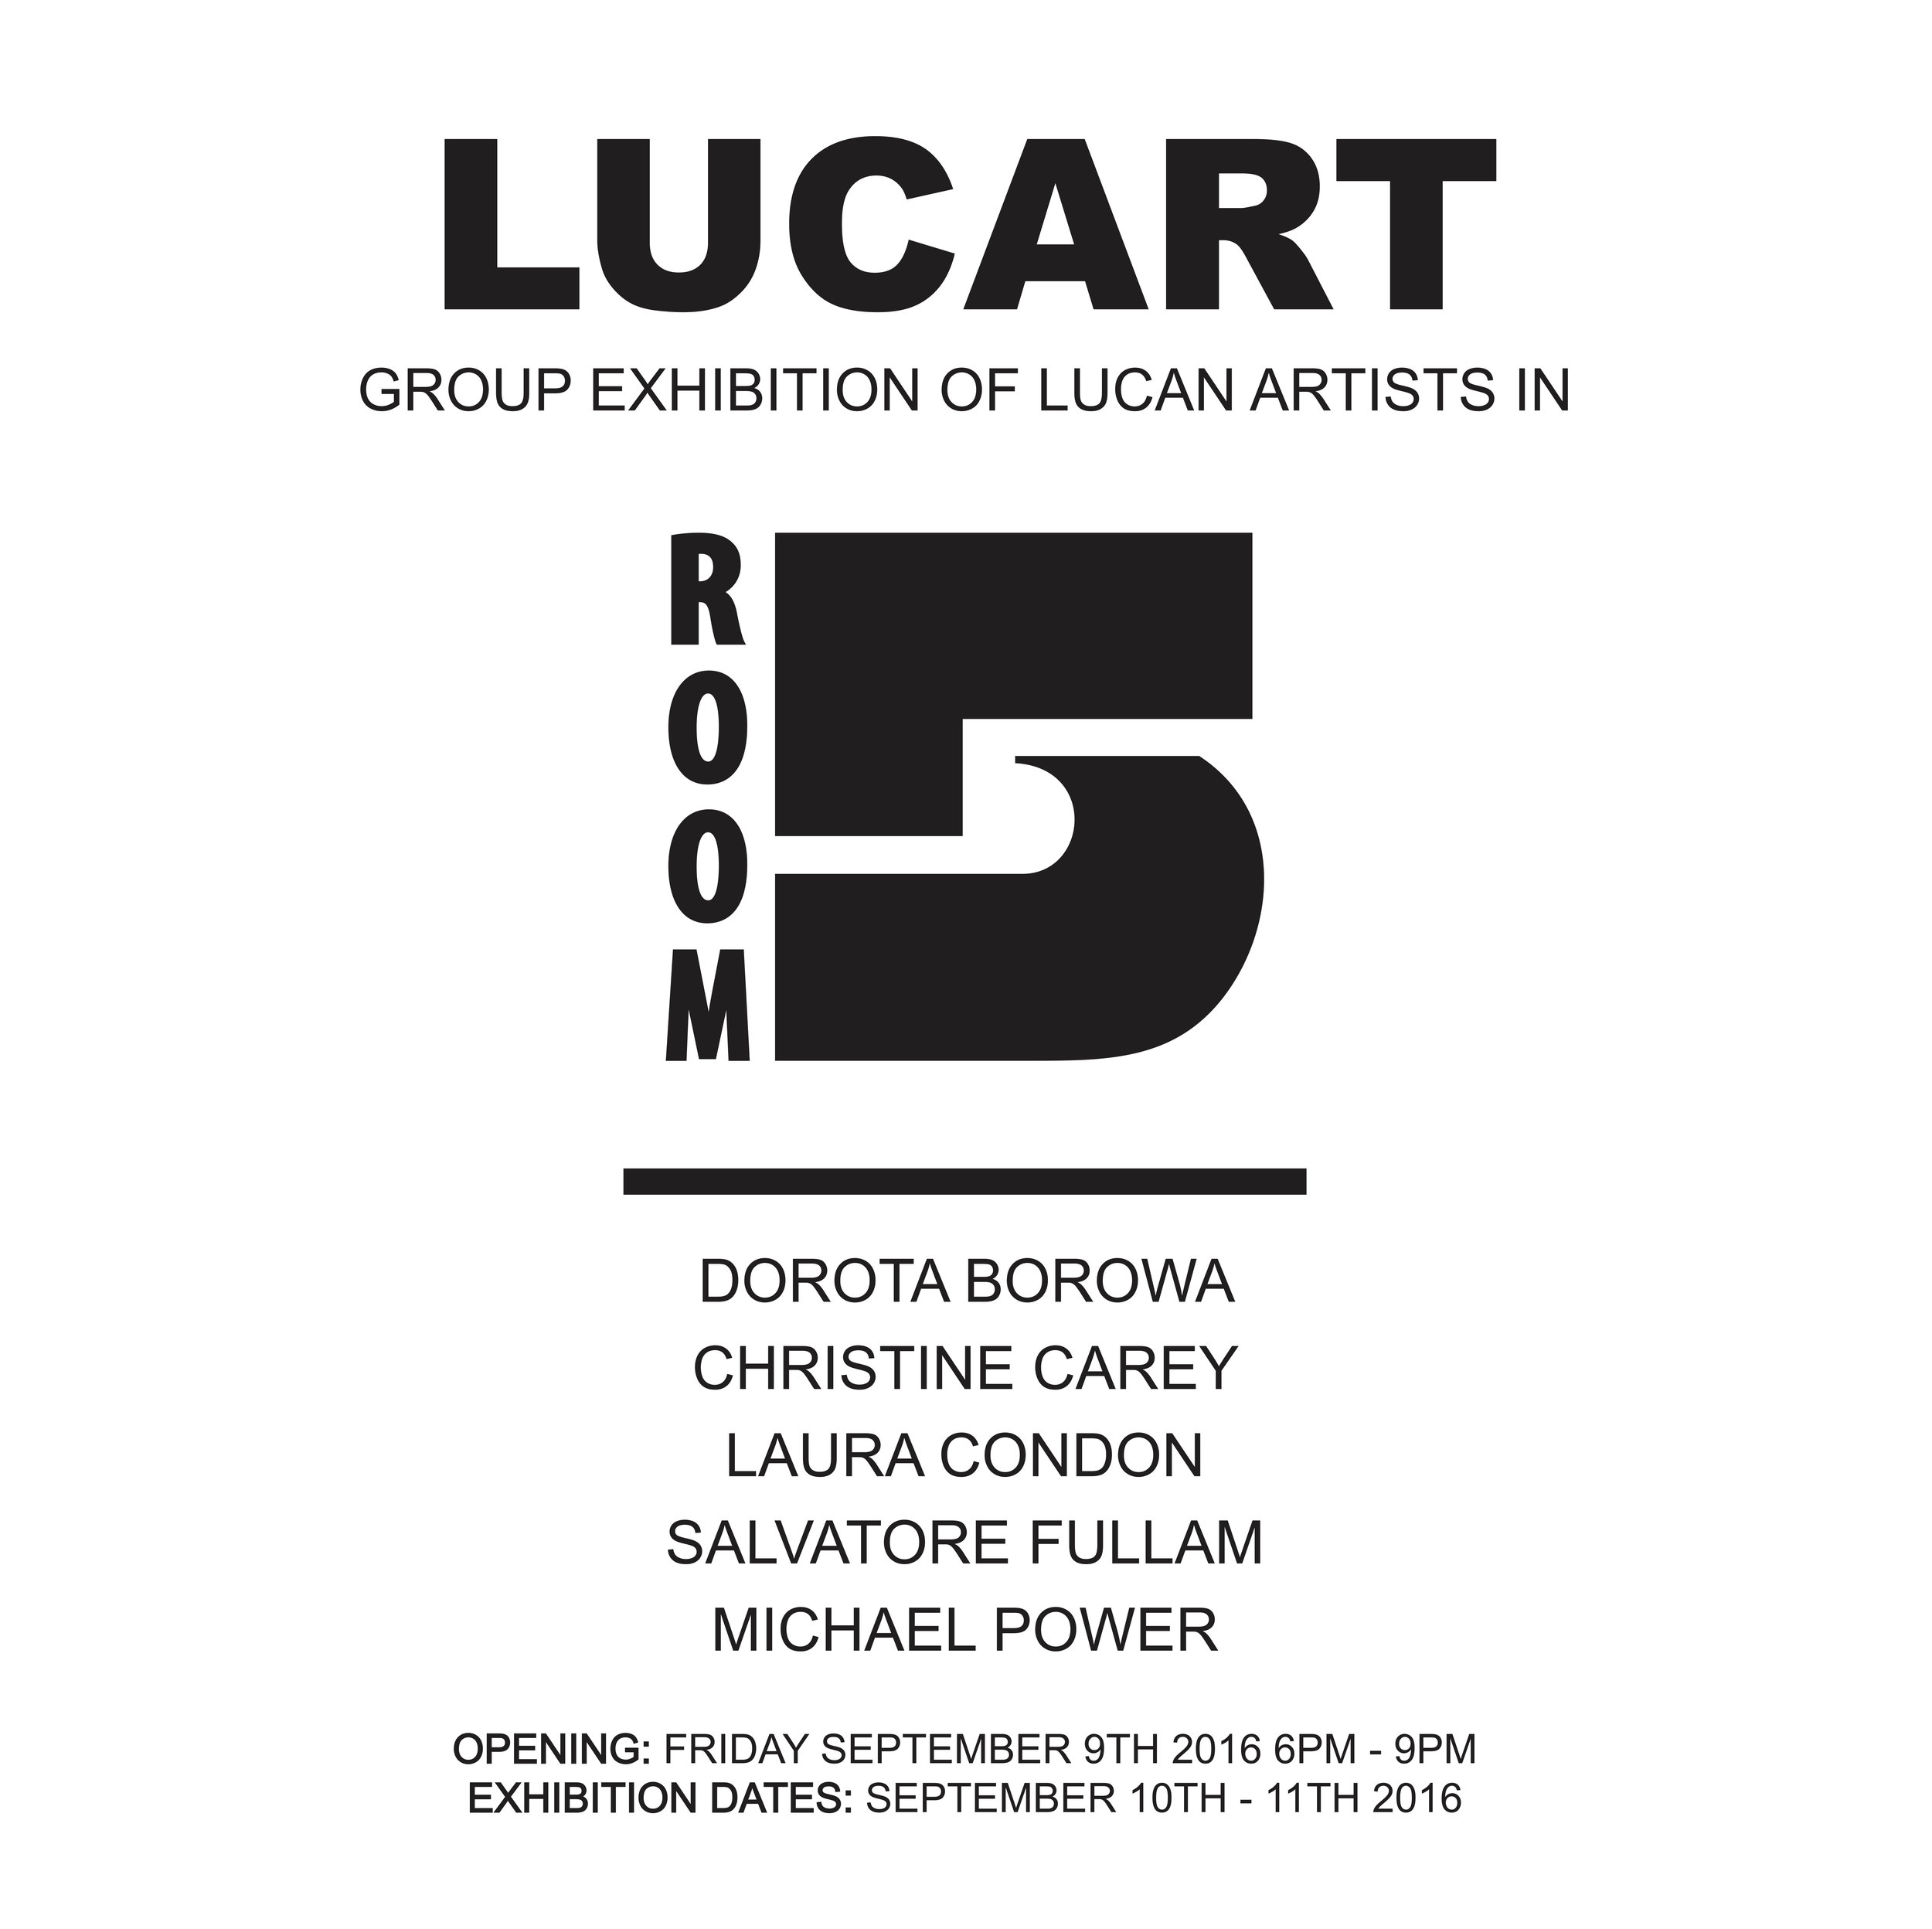 LUCART Group exhibition of Lucan Artists